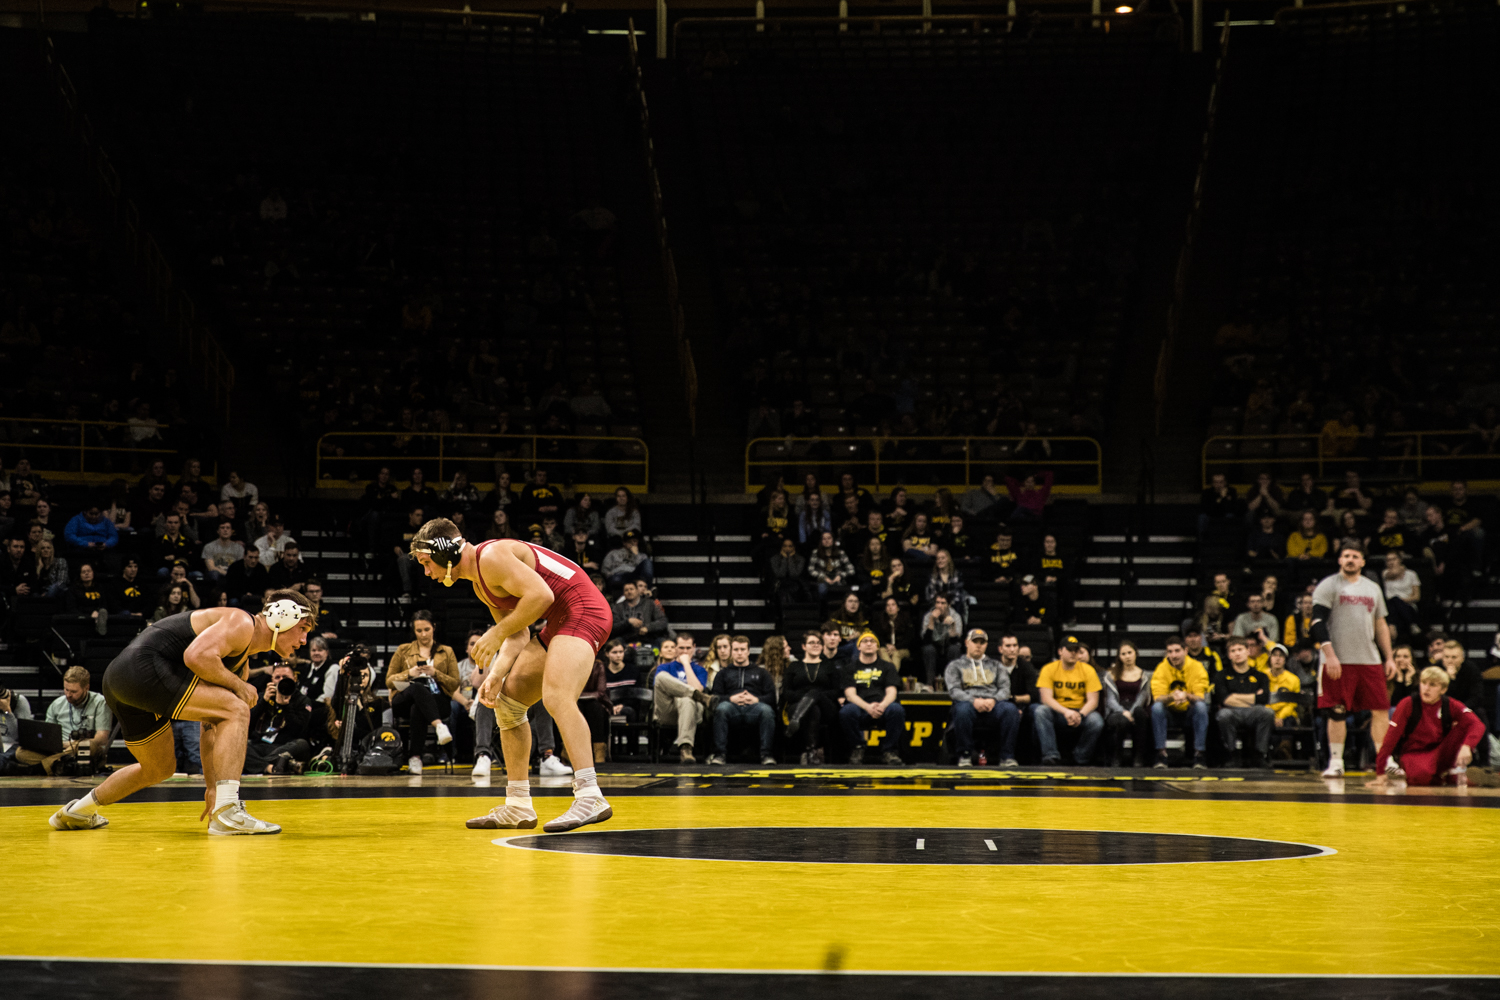 Iowa%27s+No.+11+Cash+Wilcke+wrestles+Indiana%27s+Norman+Conley+at+184lb+during+a+wrestling+match+between+Iowa+and+Indiana+at+Carver-Hawkeye+Arena+on+Friday%2C+February+15%2C+2019.+The+Hawkeyes%2C+celebrating+senior+night%2C+defeated+the+Hoosiers+37-9.